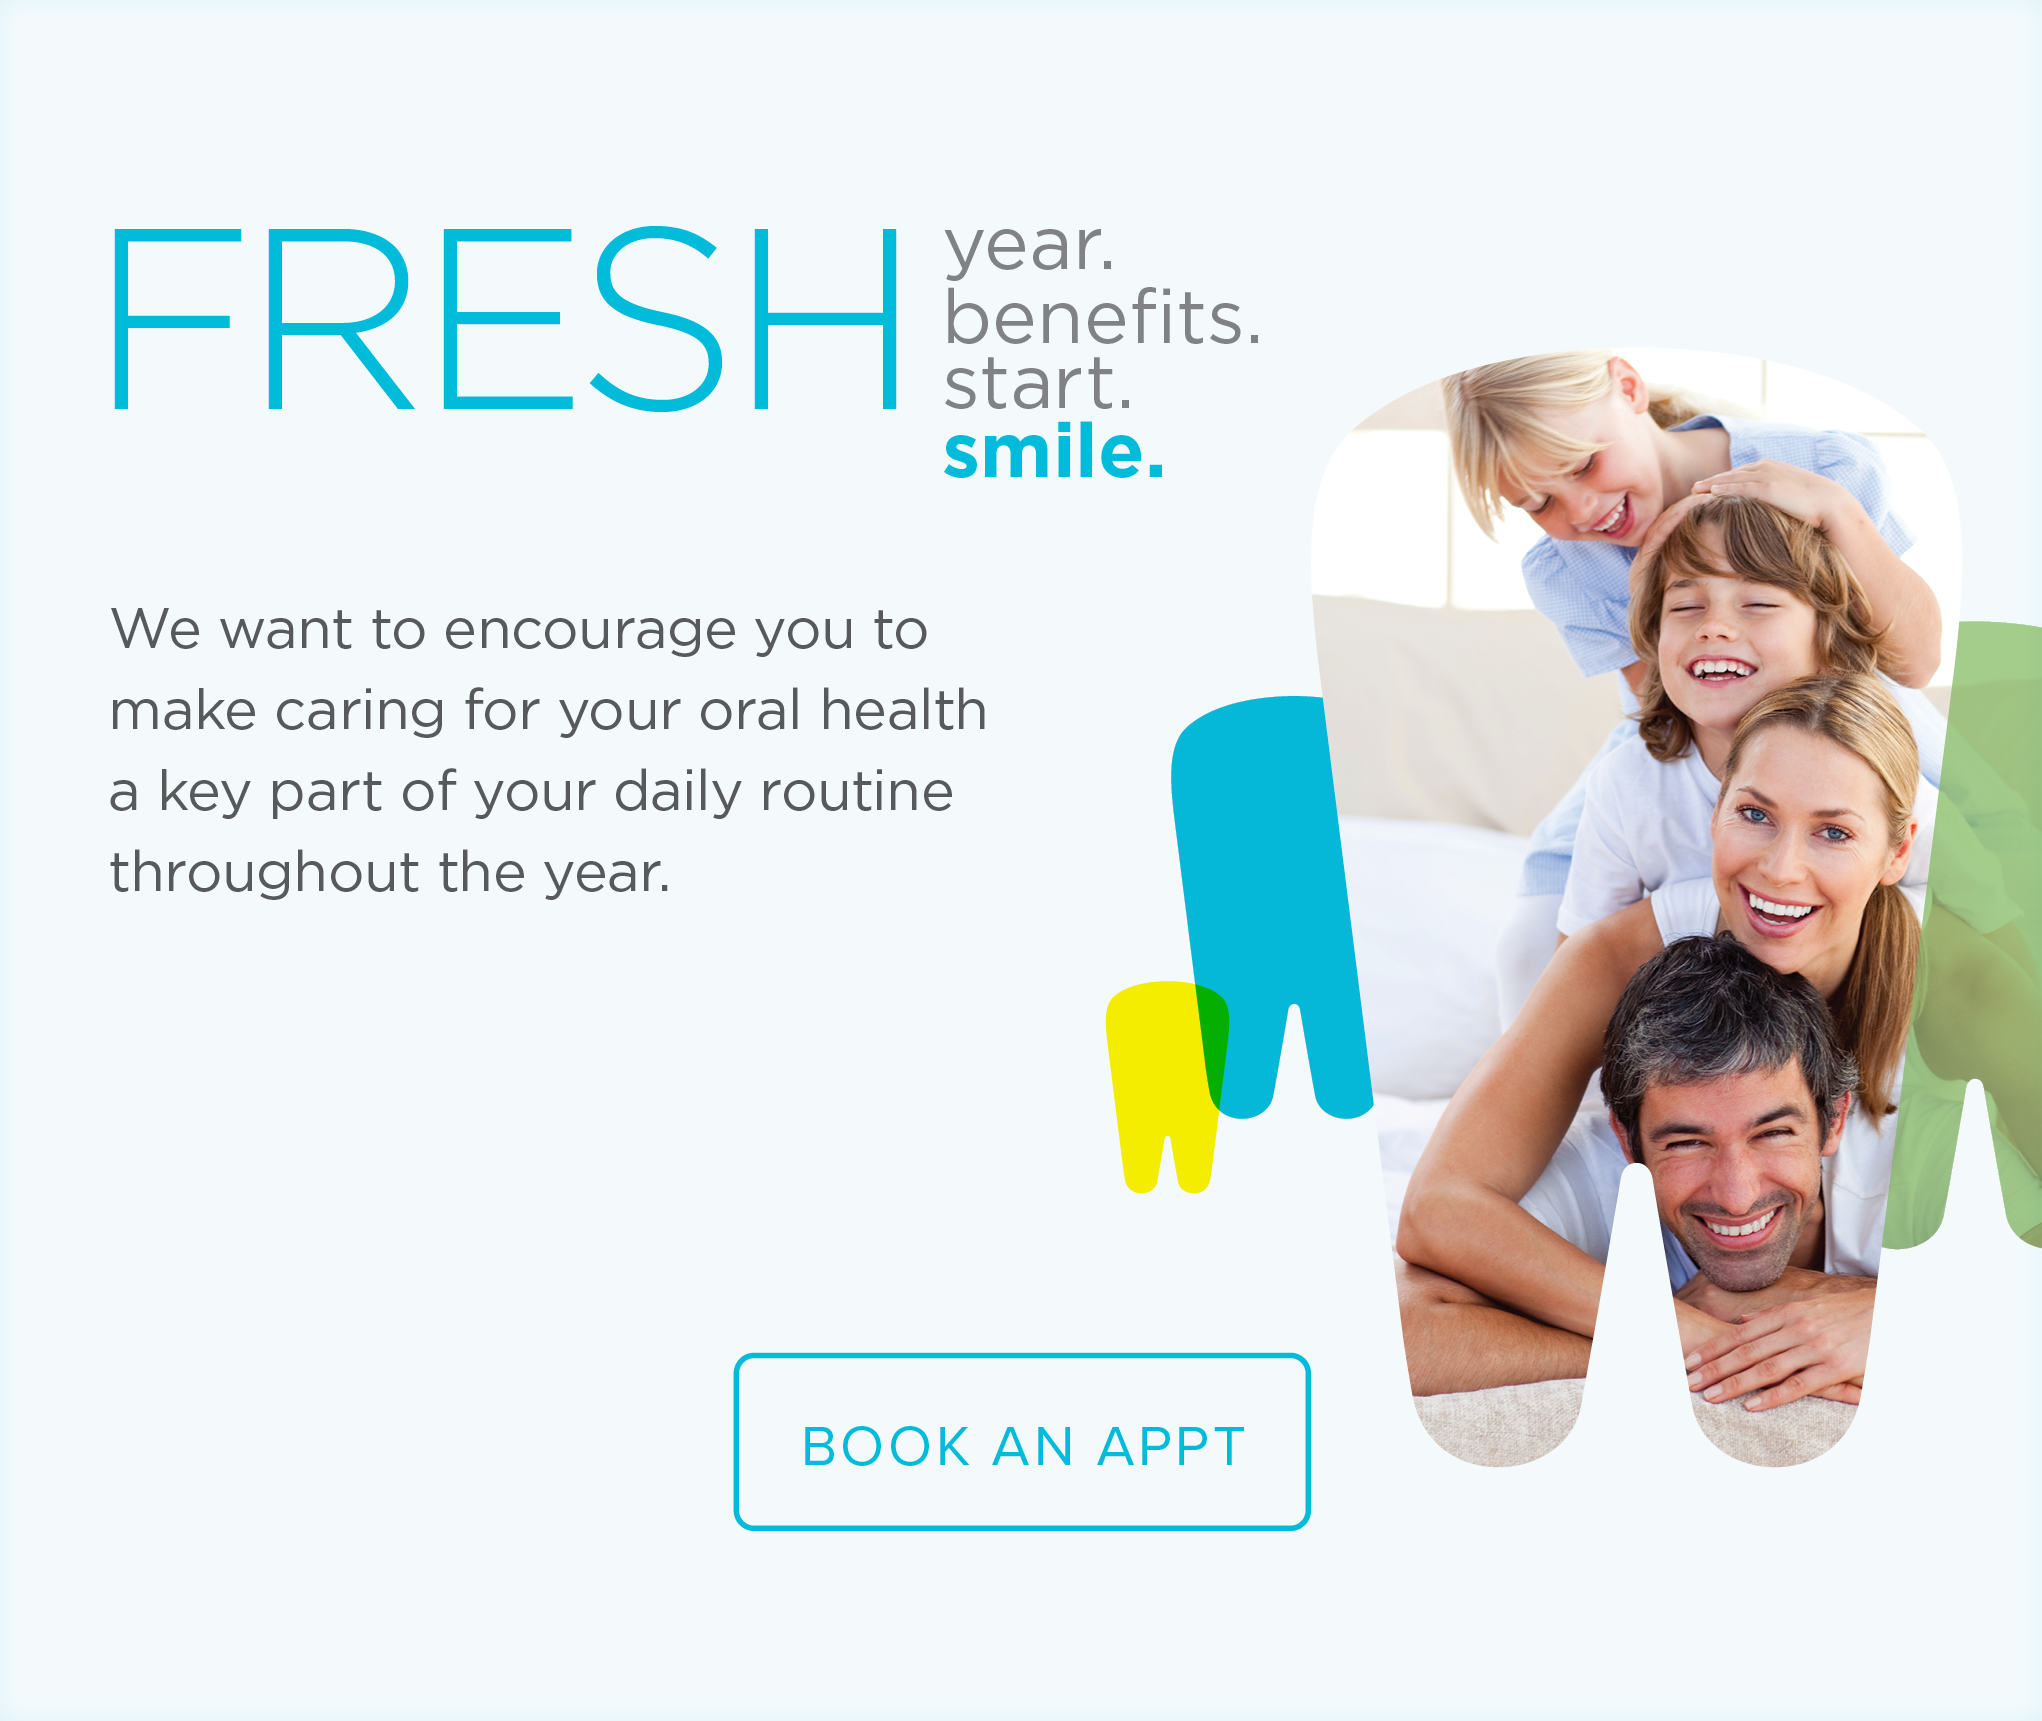 Balboa Dental Group - Make the Most of Your Benefits